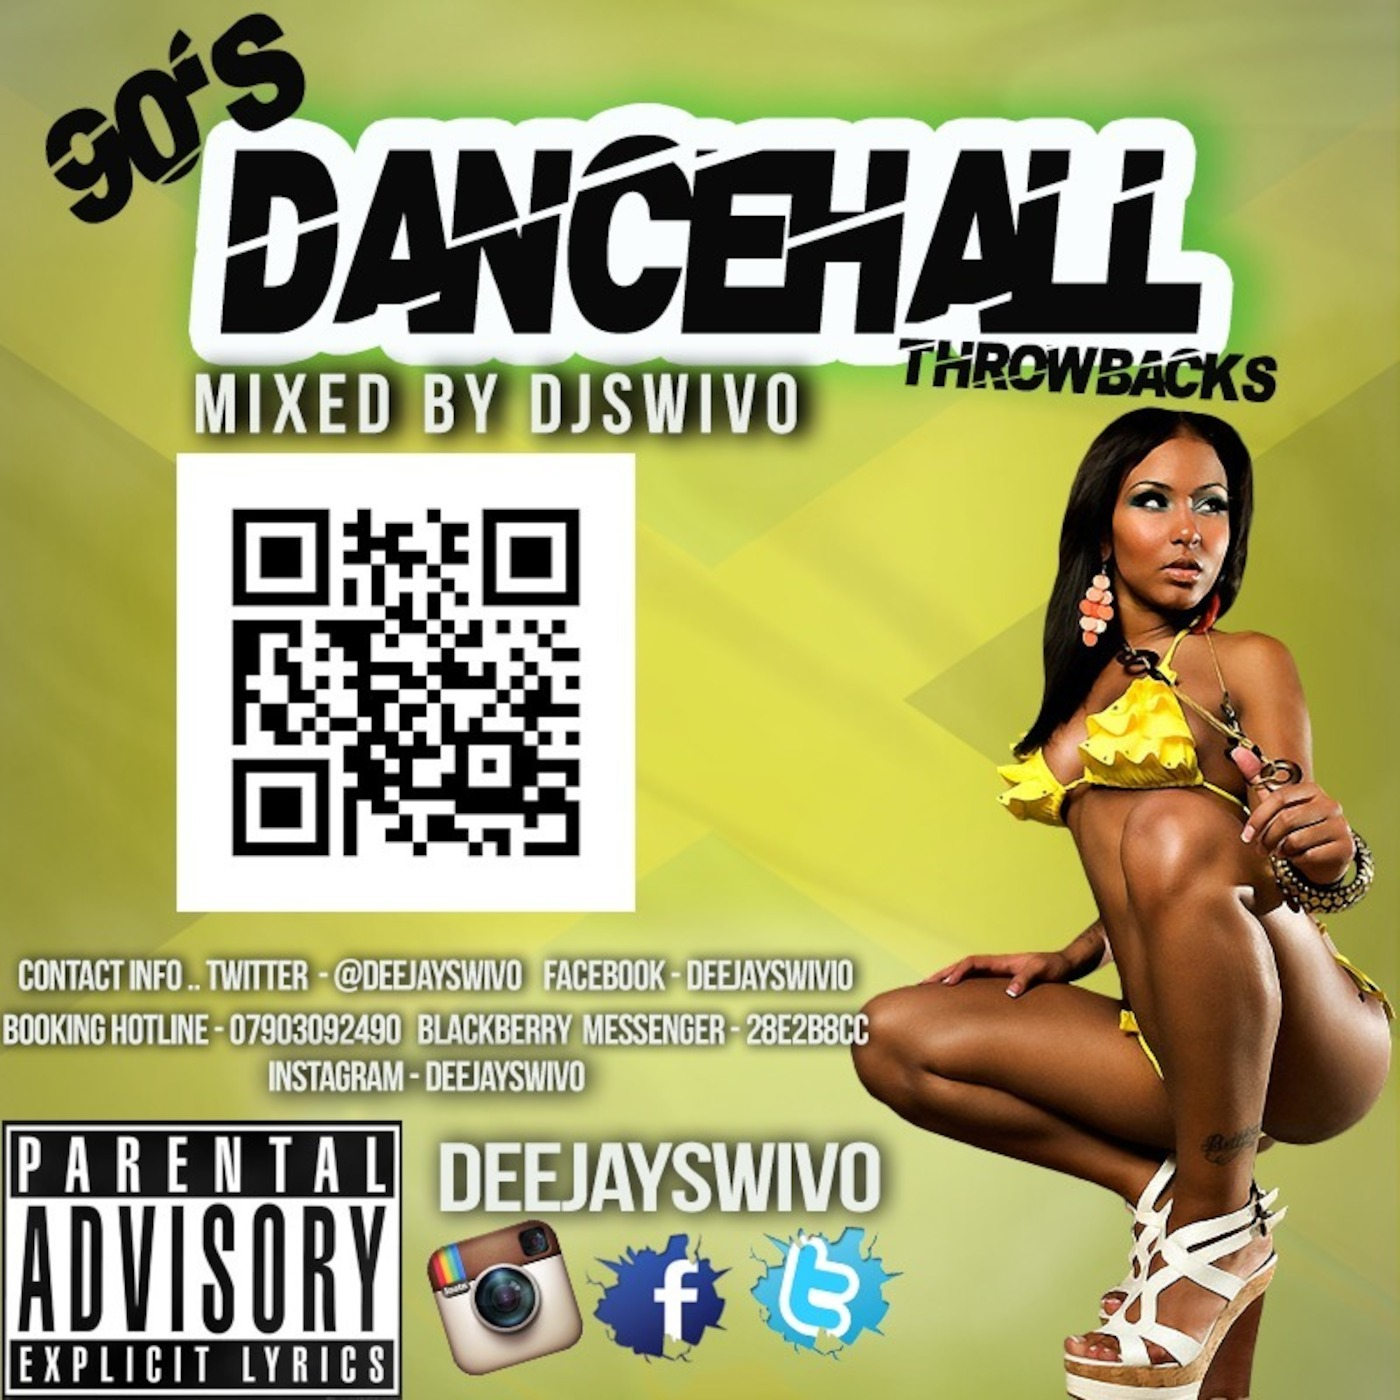 Dj Swivo 90s Dancehall Throwback Mix Cd 2013